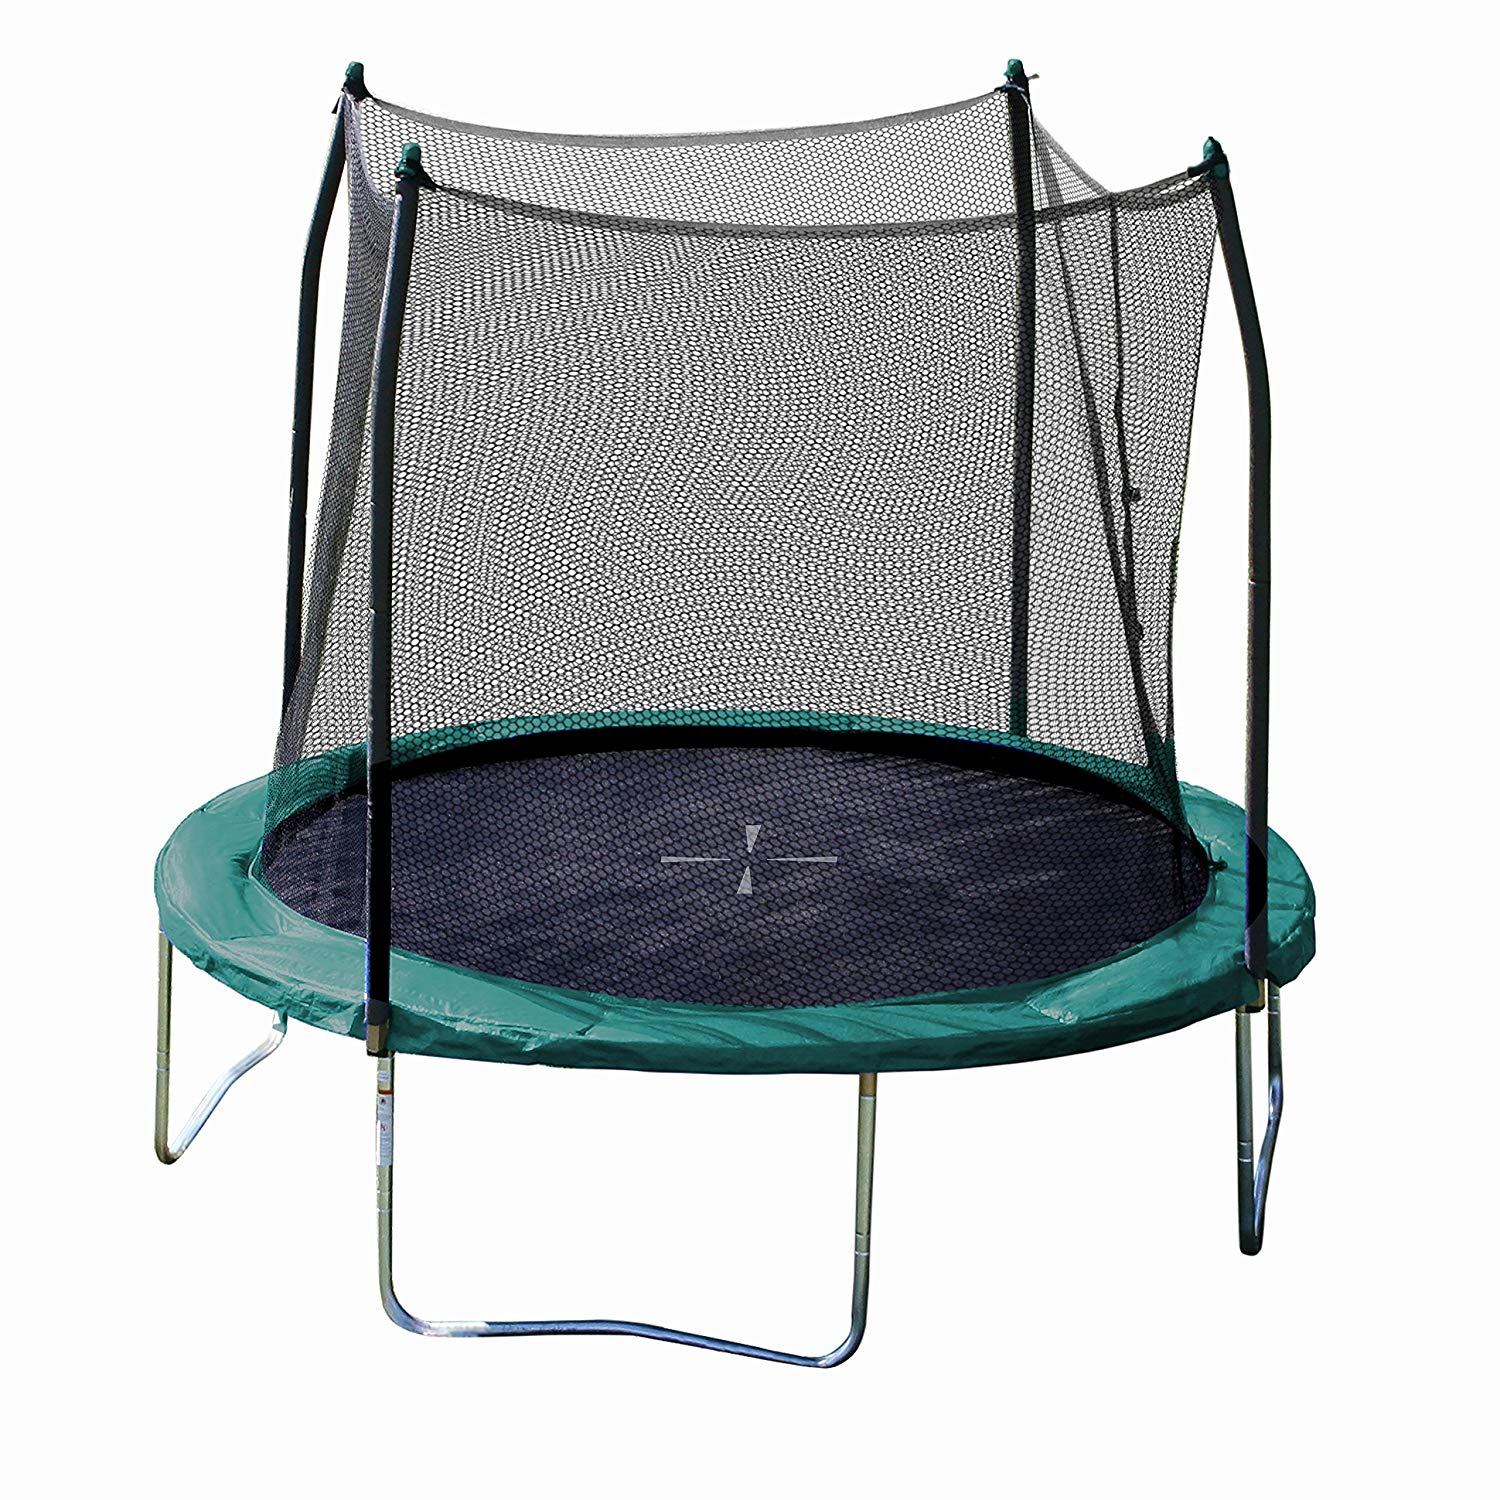 Skywalker Trampolin amazon